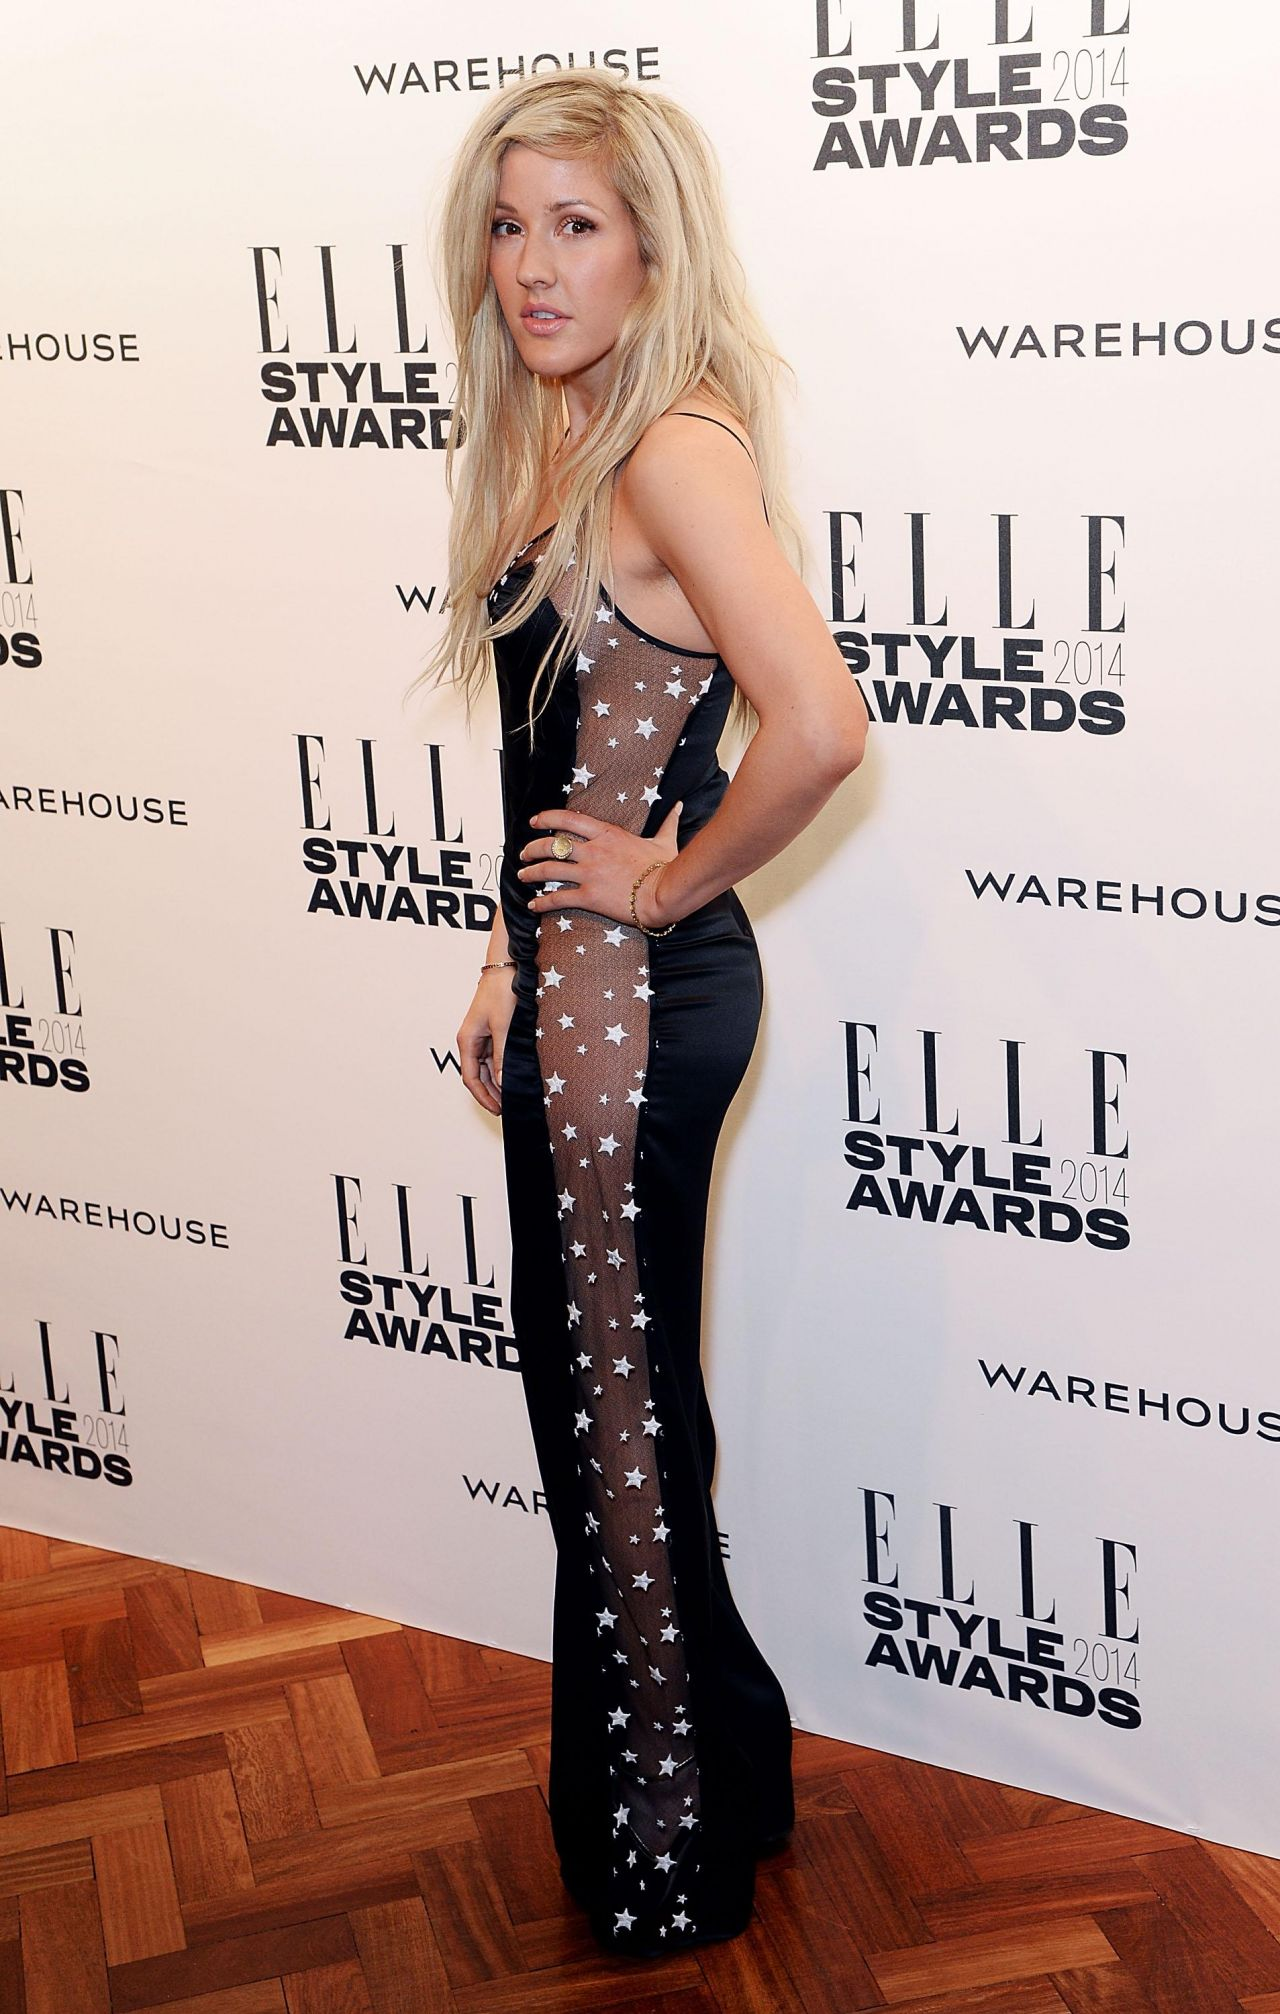 Ellie Goulding Wearing Jumpsuit From Matthew Williamson - ELLE Style Awards 2014